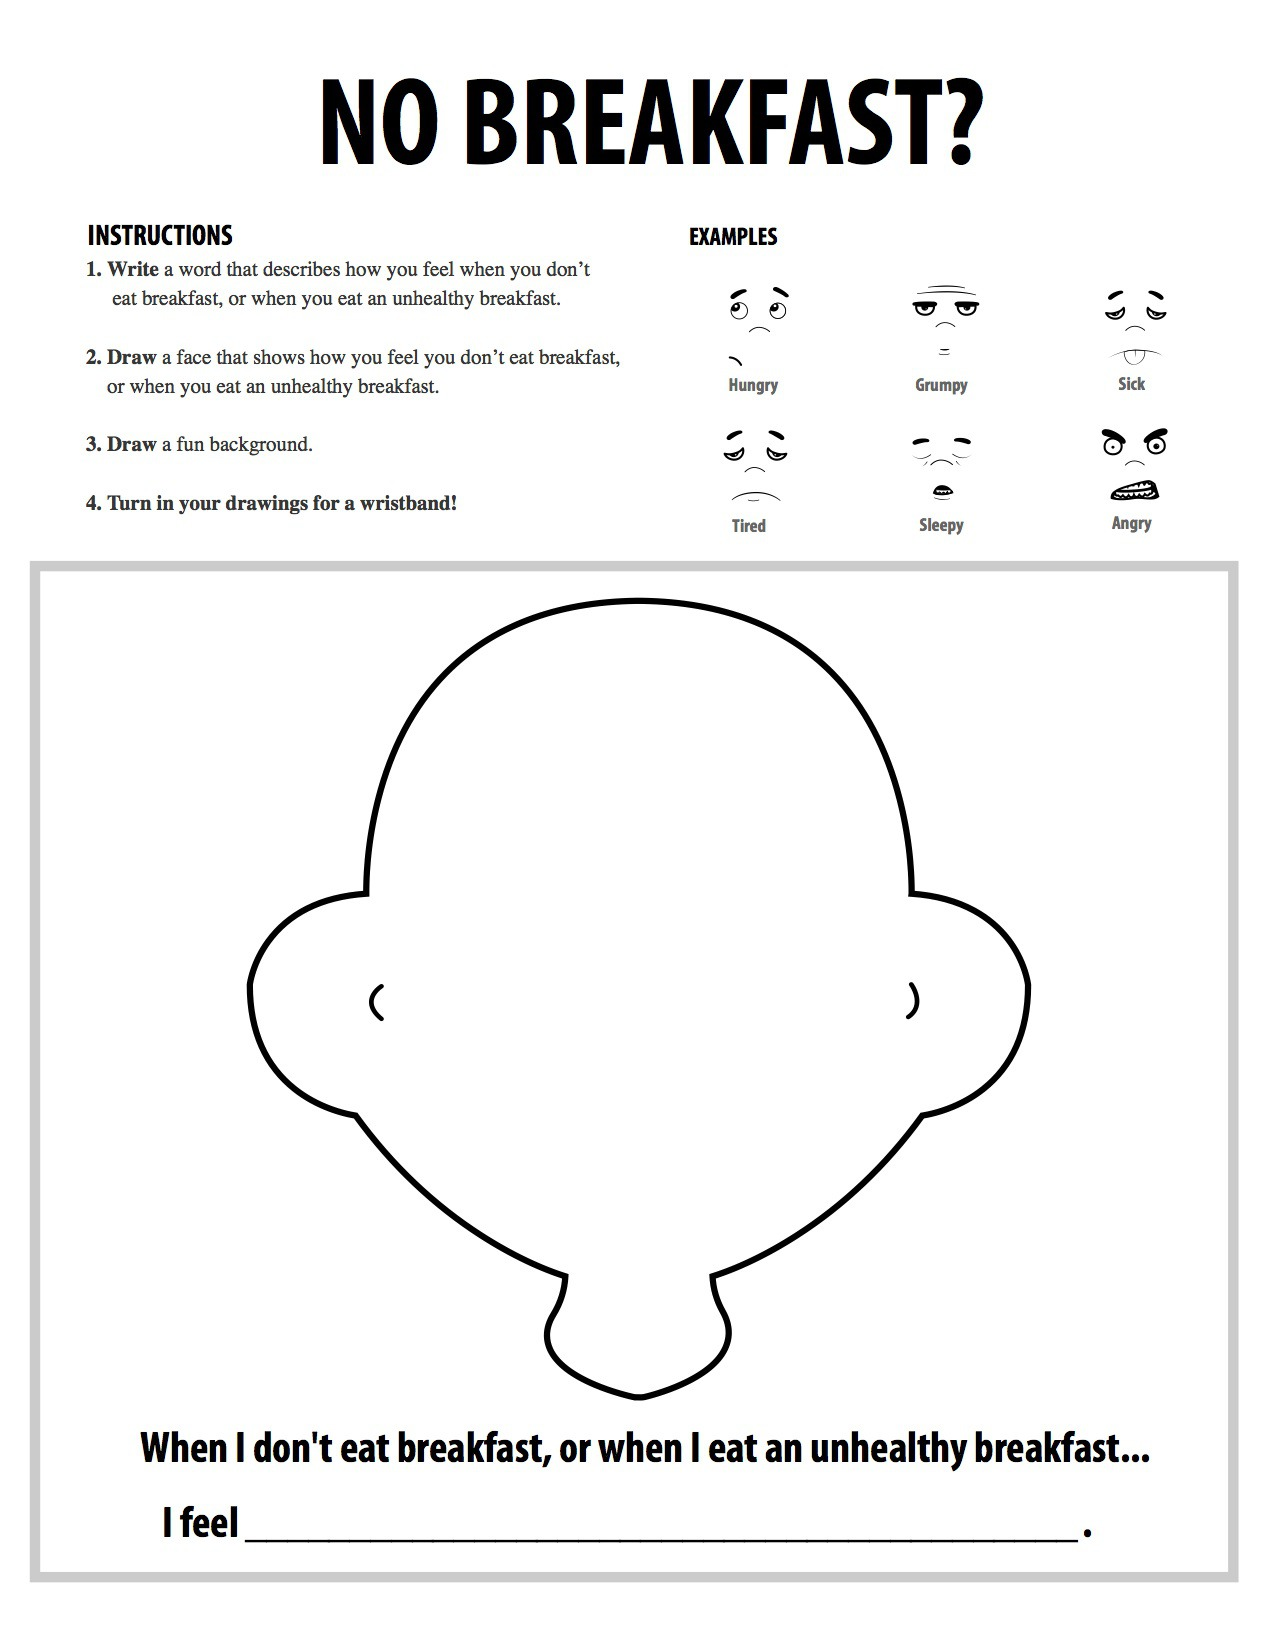 Printables 2nd Grade Health Worksheets galleries texas healthy habits breakfast coloring activity 2 jpg